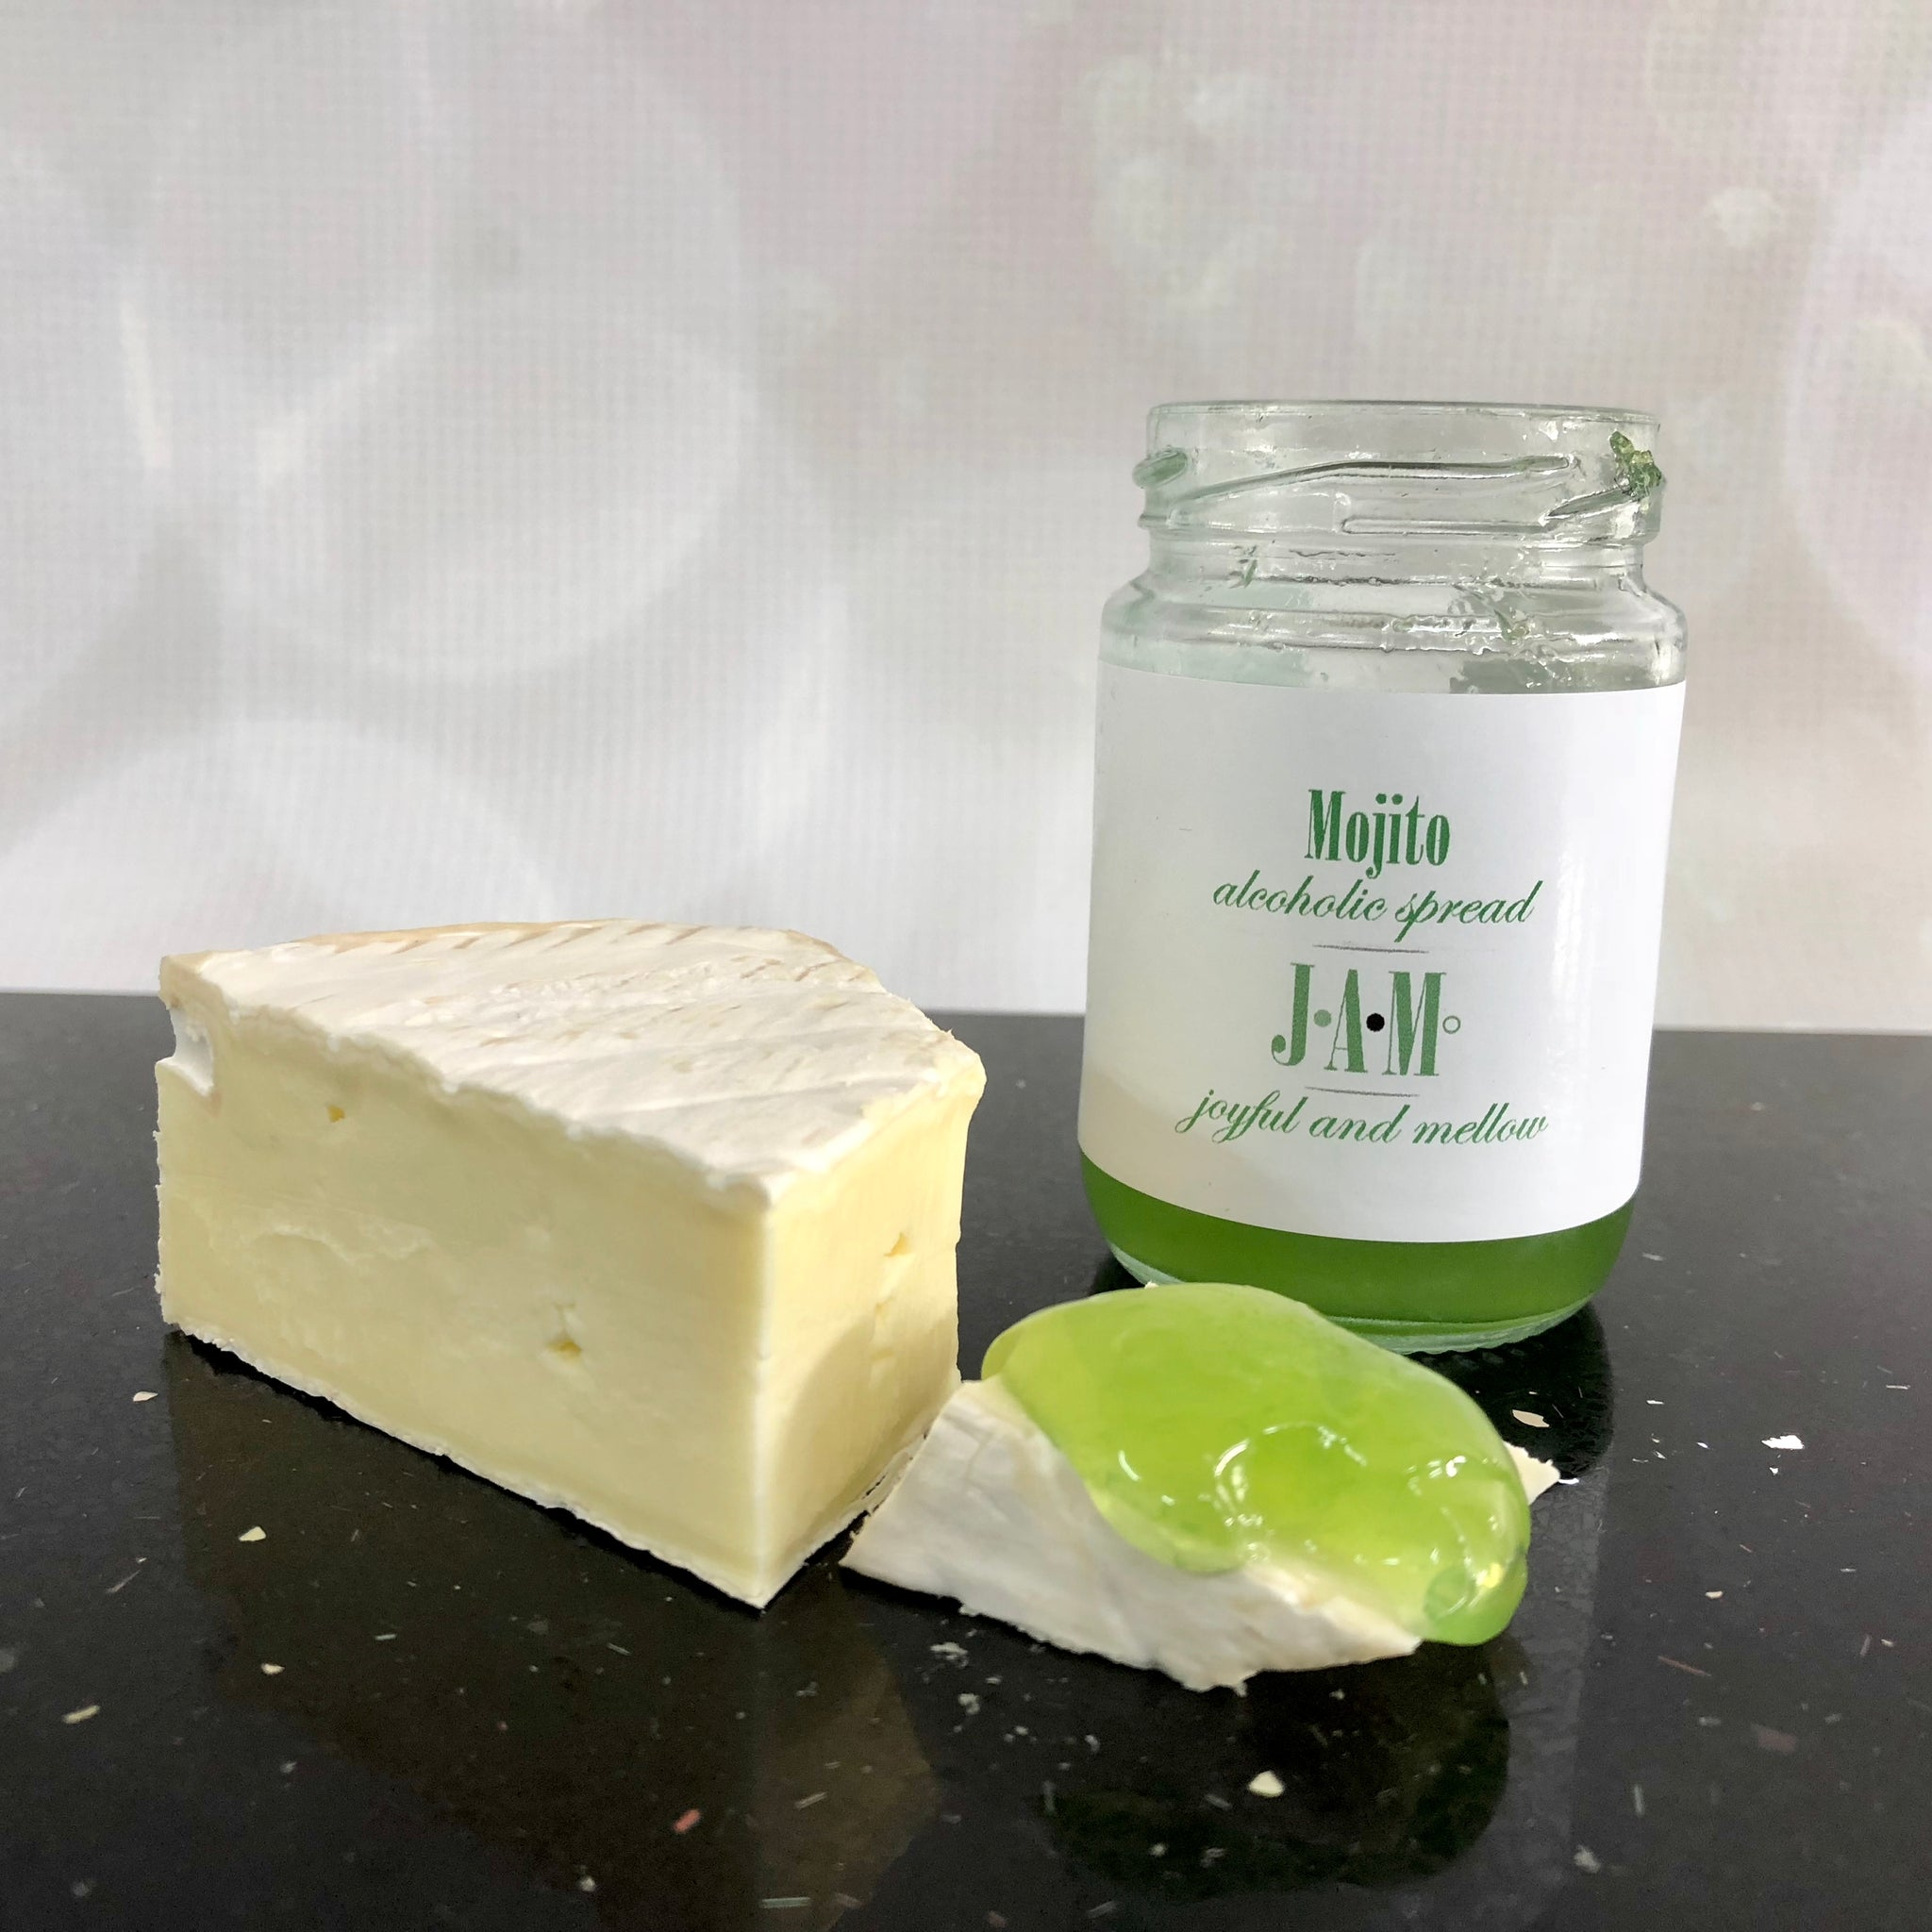 Mojito jam and brie - Cocktail Jam